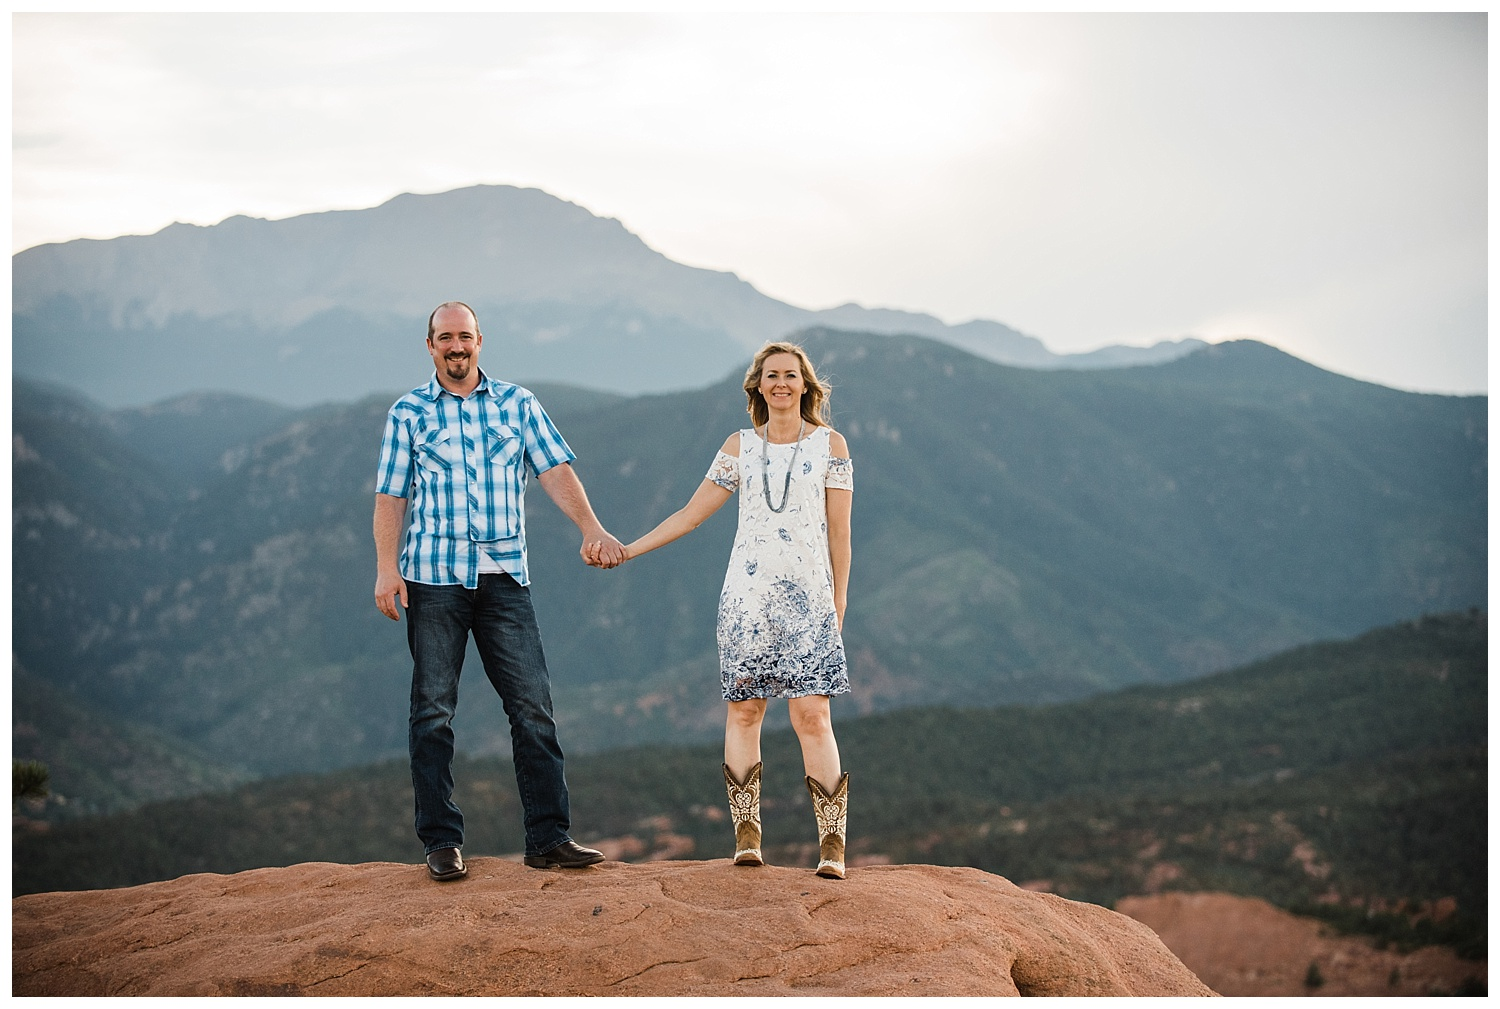 Garden_of_the_Gods_Engagement_Session_Colorado_Springs_Apollo_Fields_08.jpg